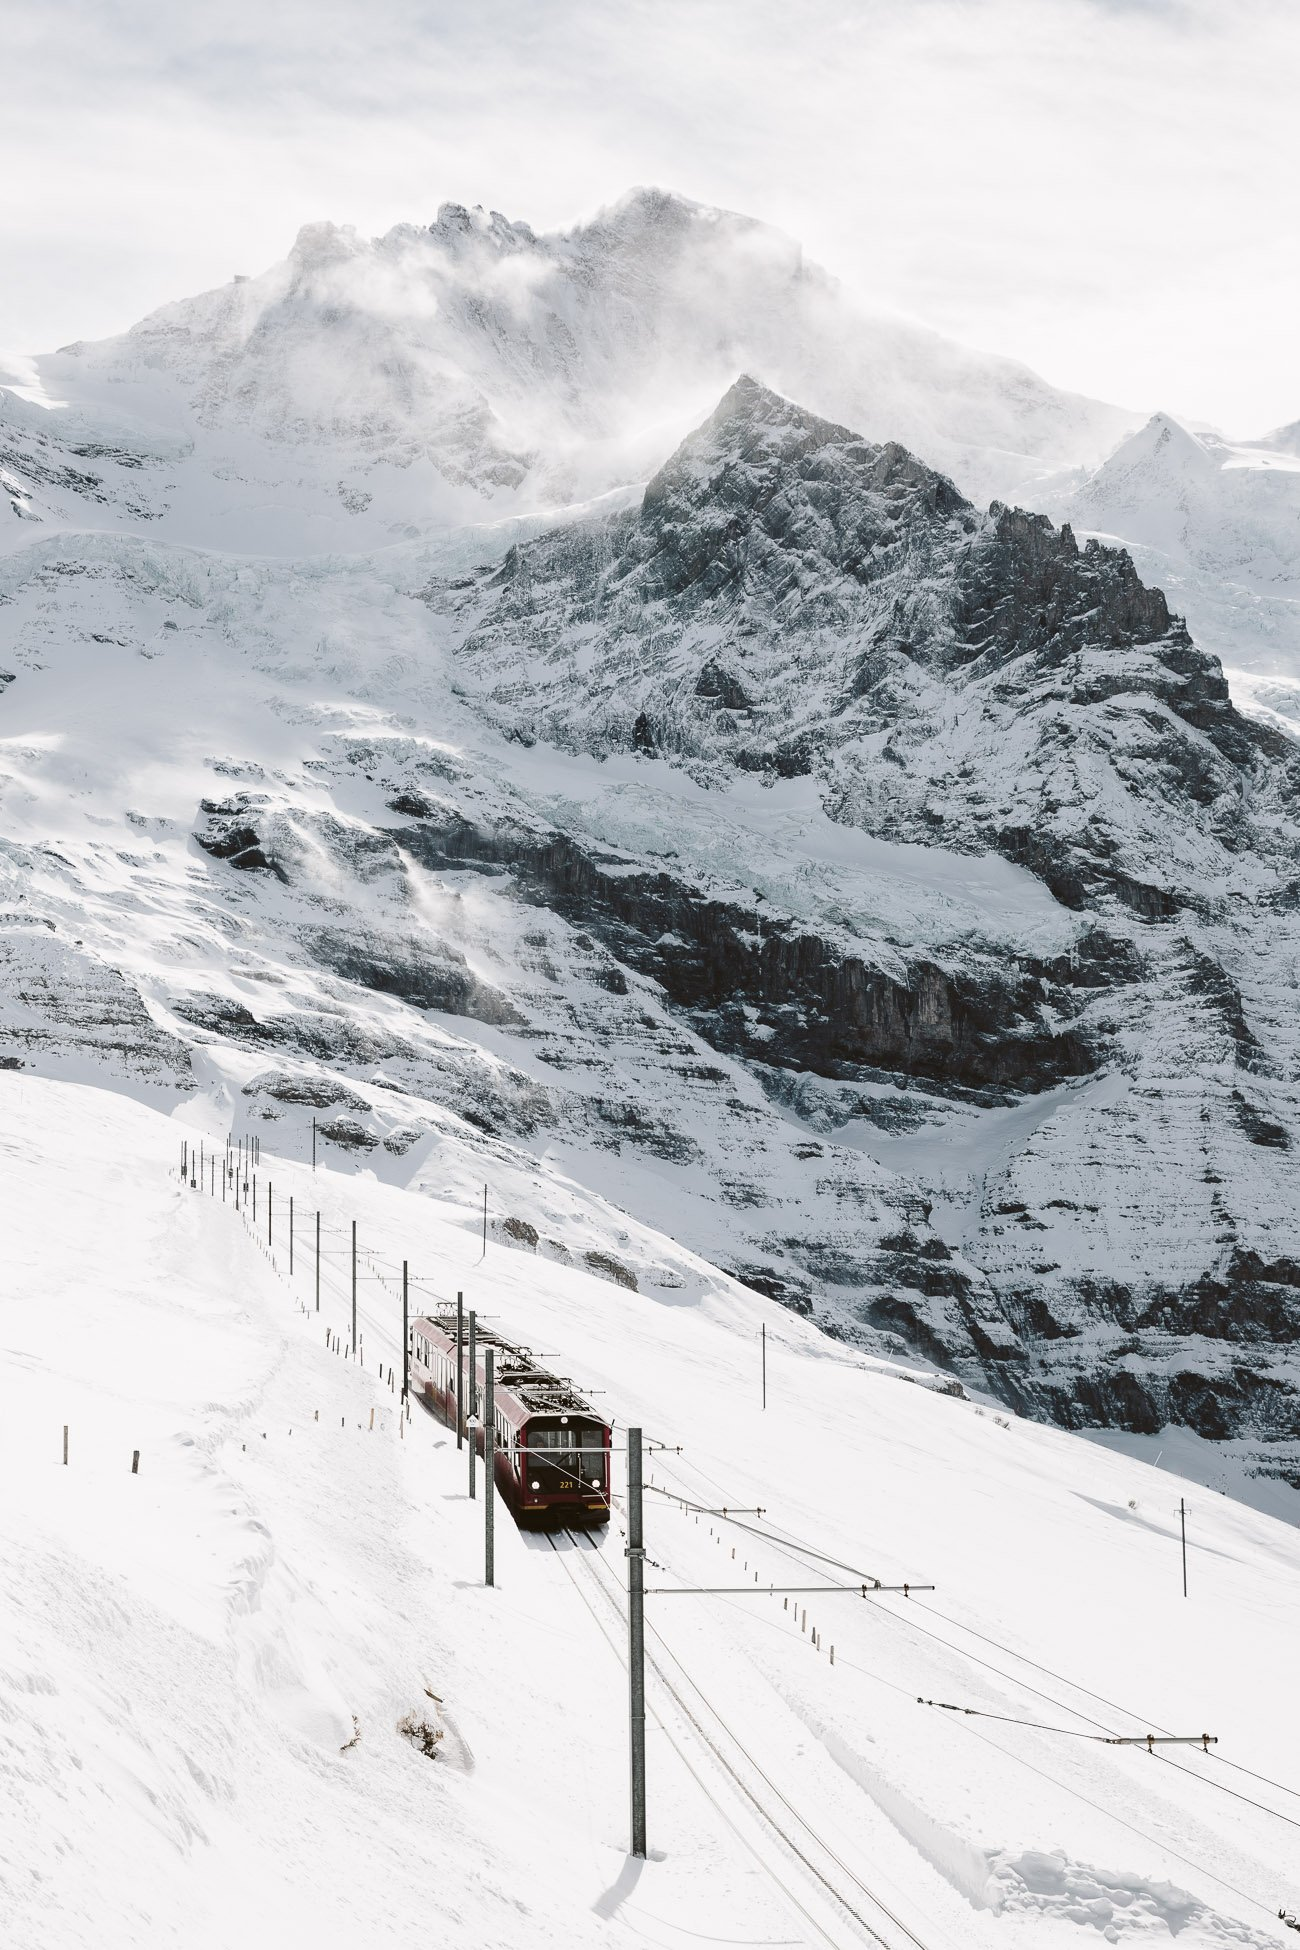 Jungfraubahn in Switzerland